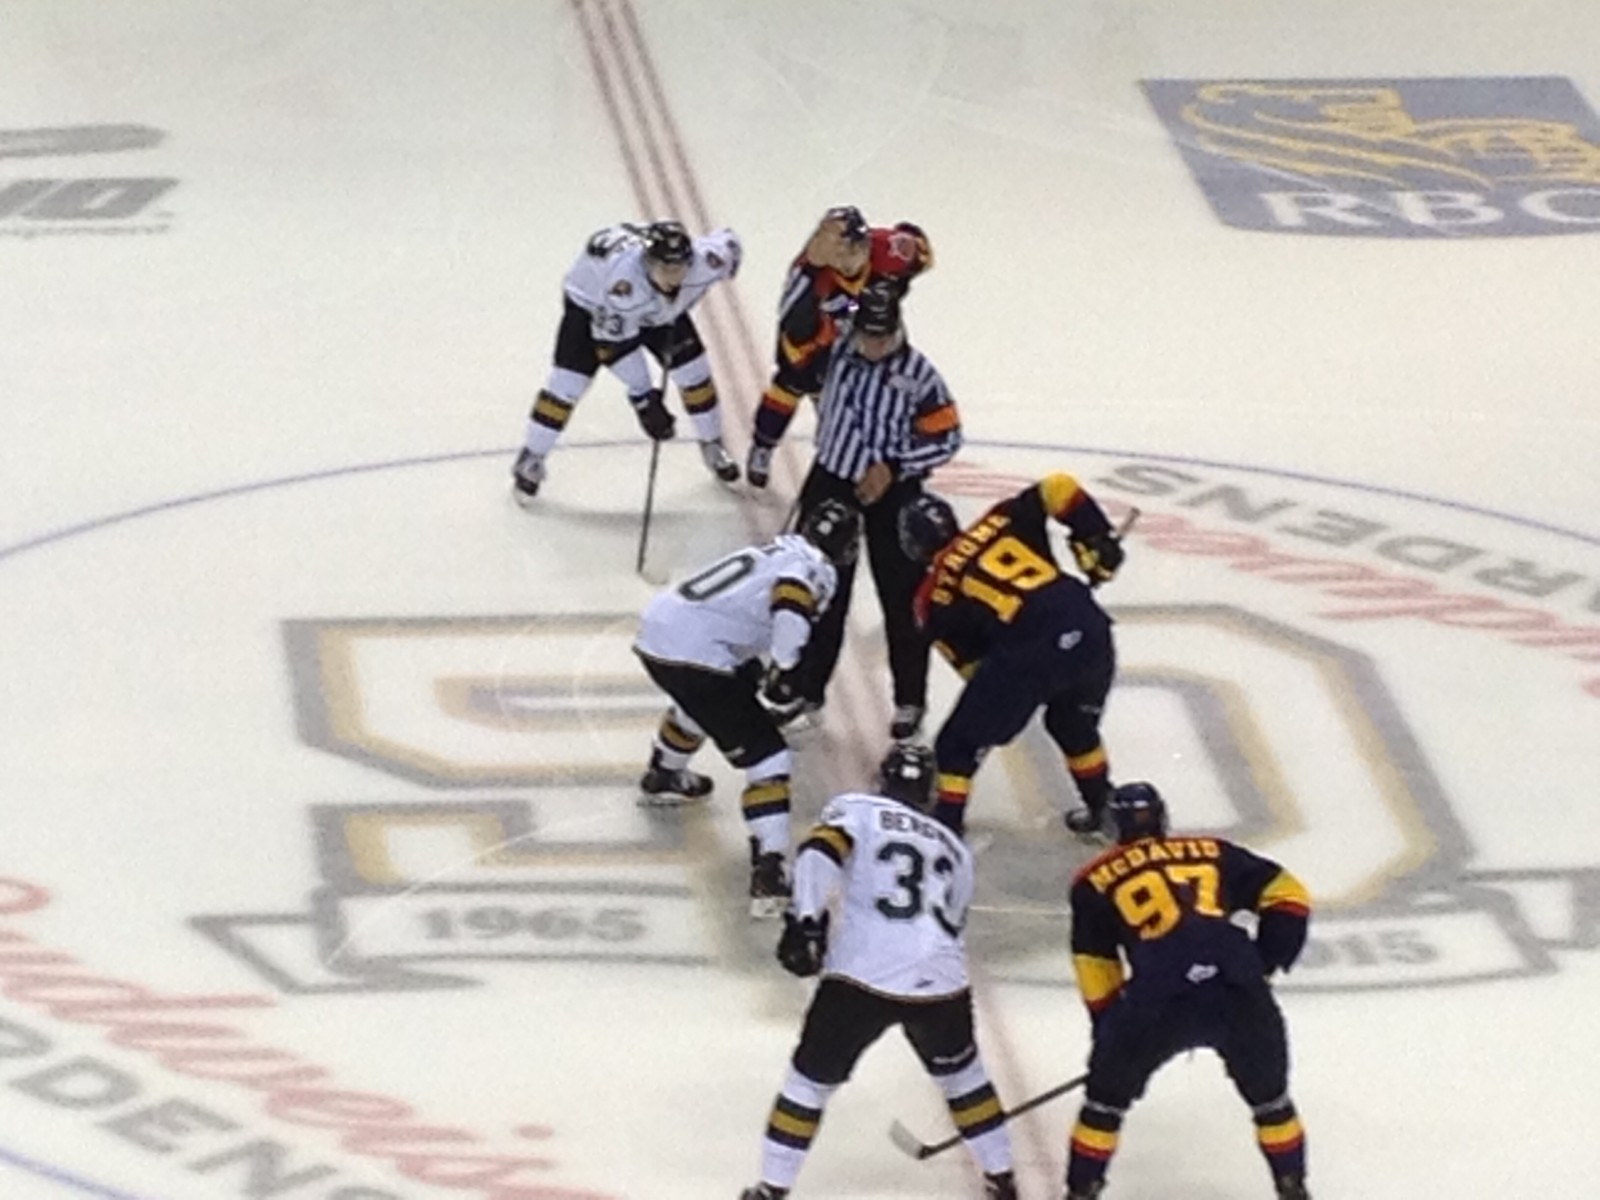 Knights upset Otters in shootout